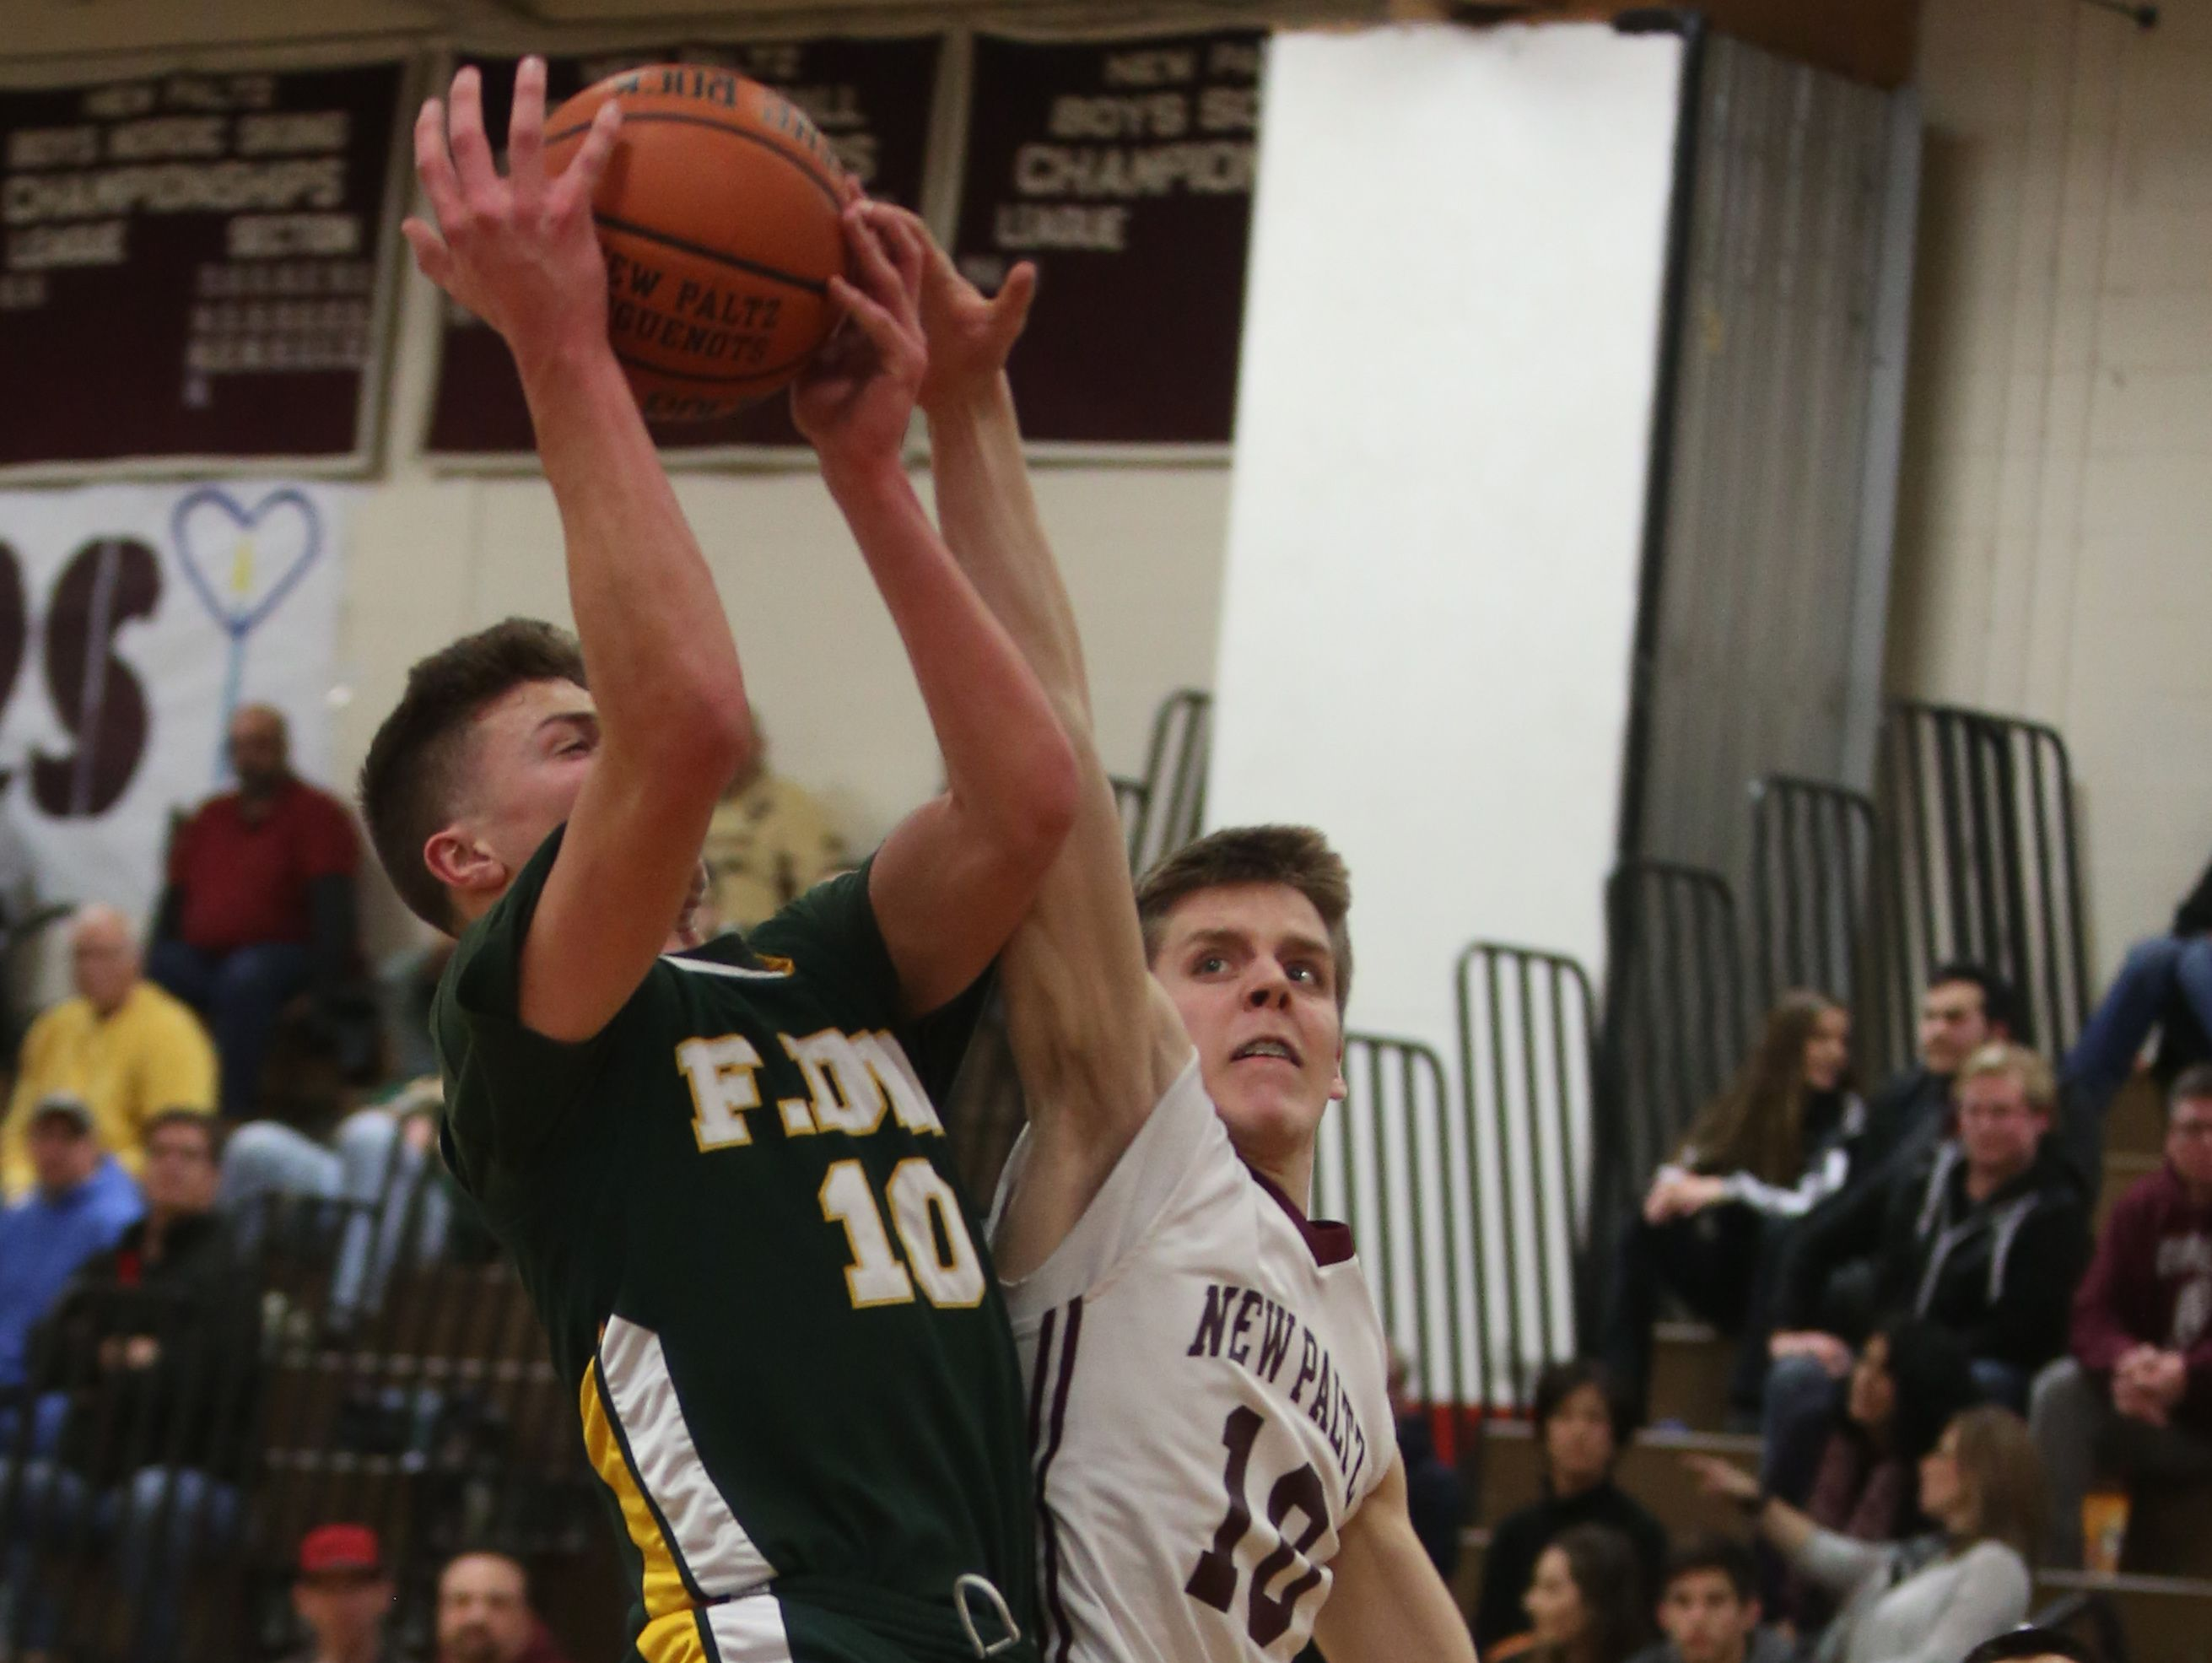 New Paltz's Charlie Perez (10) tries to block Franklin D. Roosevelt's Ethan Hart (10) layup during basketball game at New Paltz High School on Feb. 3, 2017.